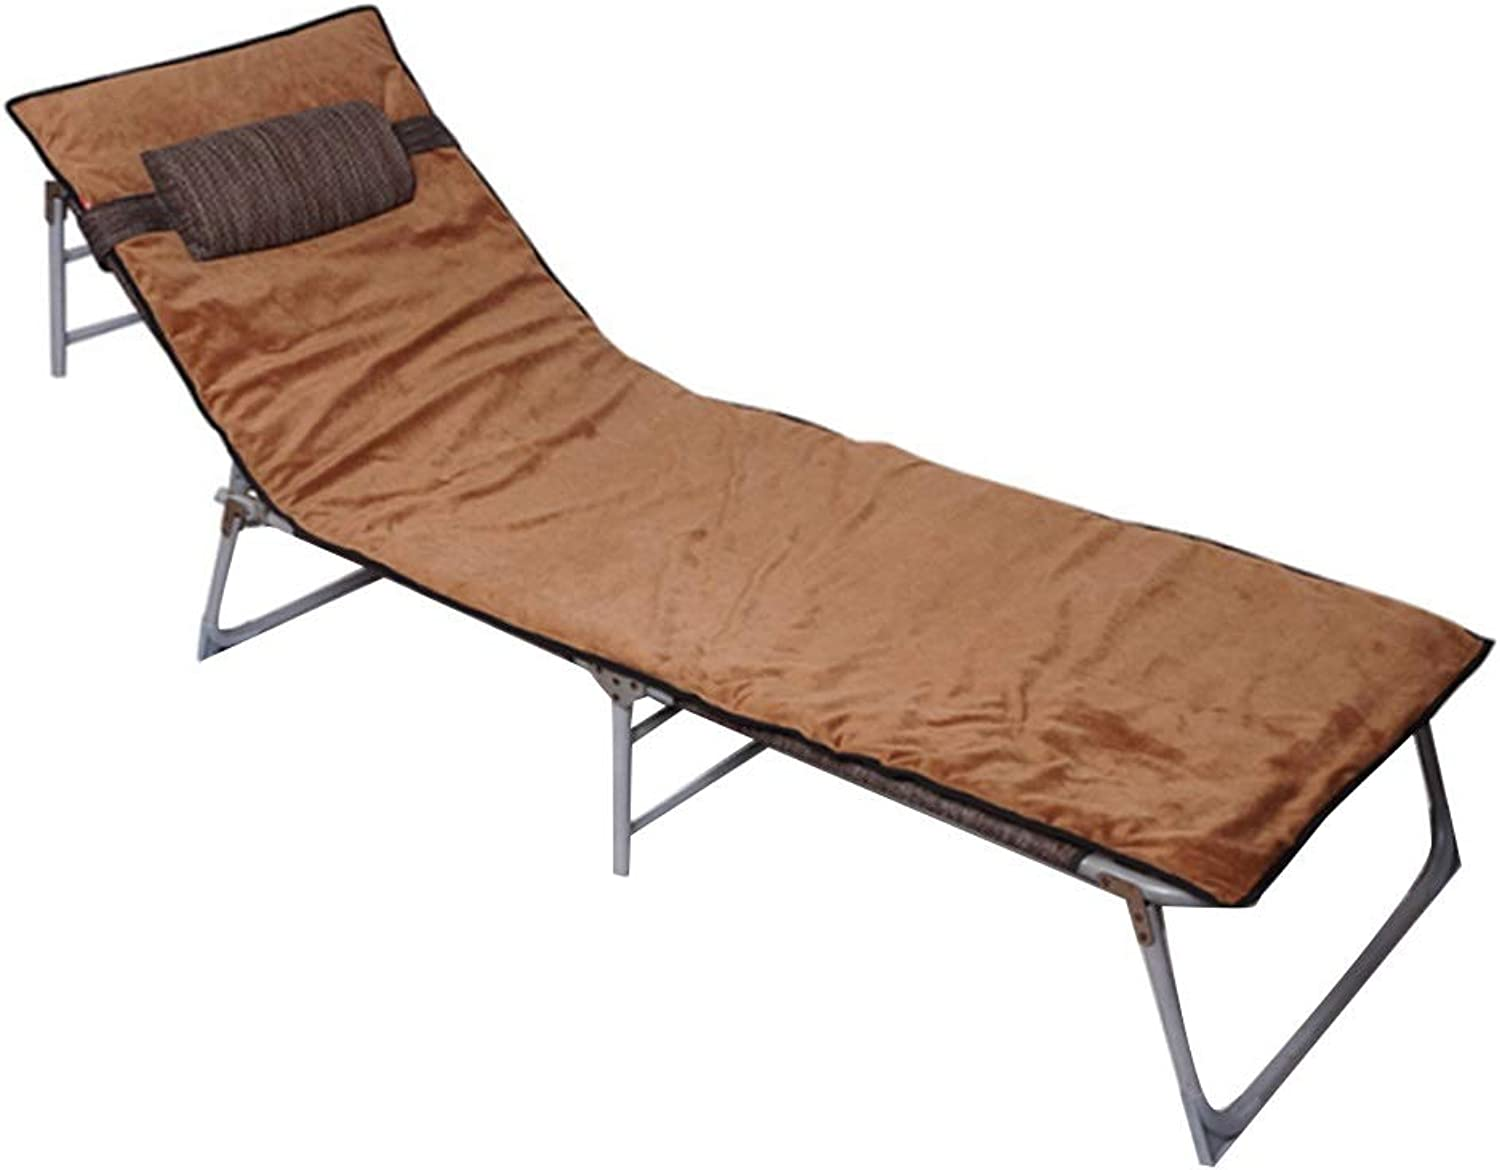 Folding Bed Camping Bed Office Lunch Bed Adult Single Bed Outdoor Beach Bed Hospital Accompanying Bed Can Bear 200 Kg (color   B, Size   193  63  30cm)